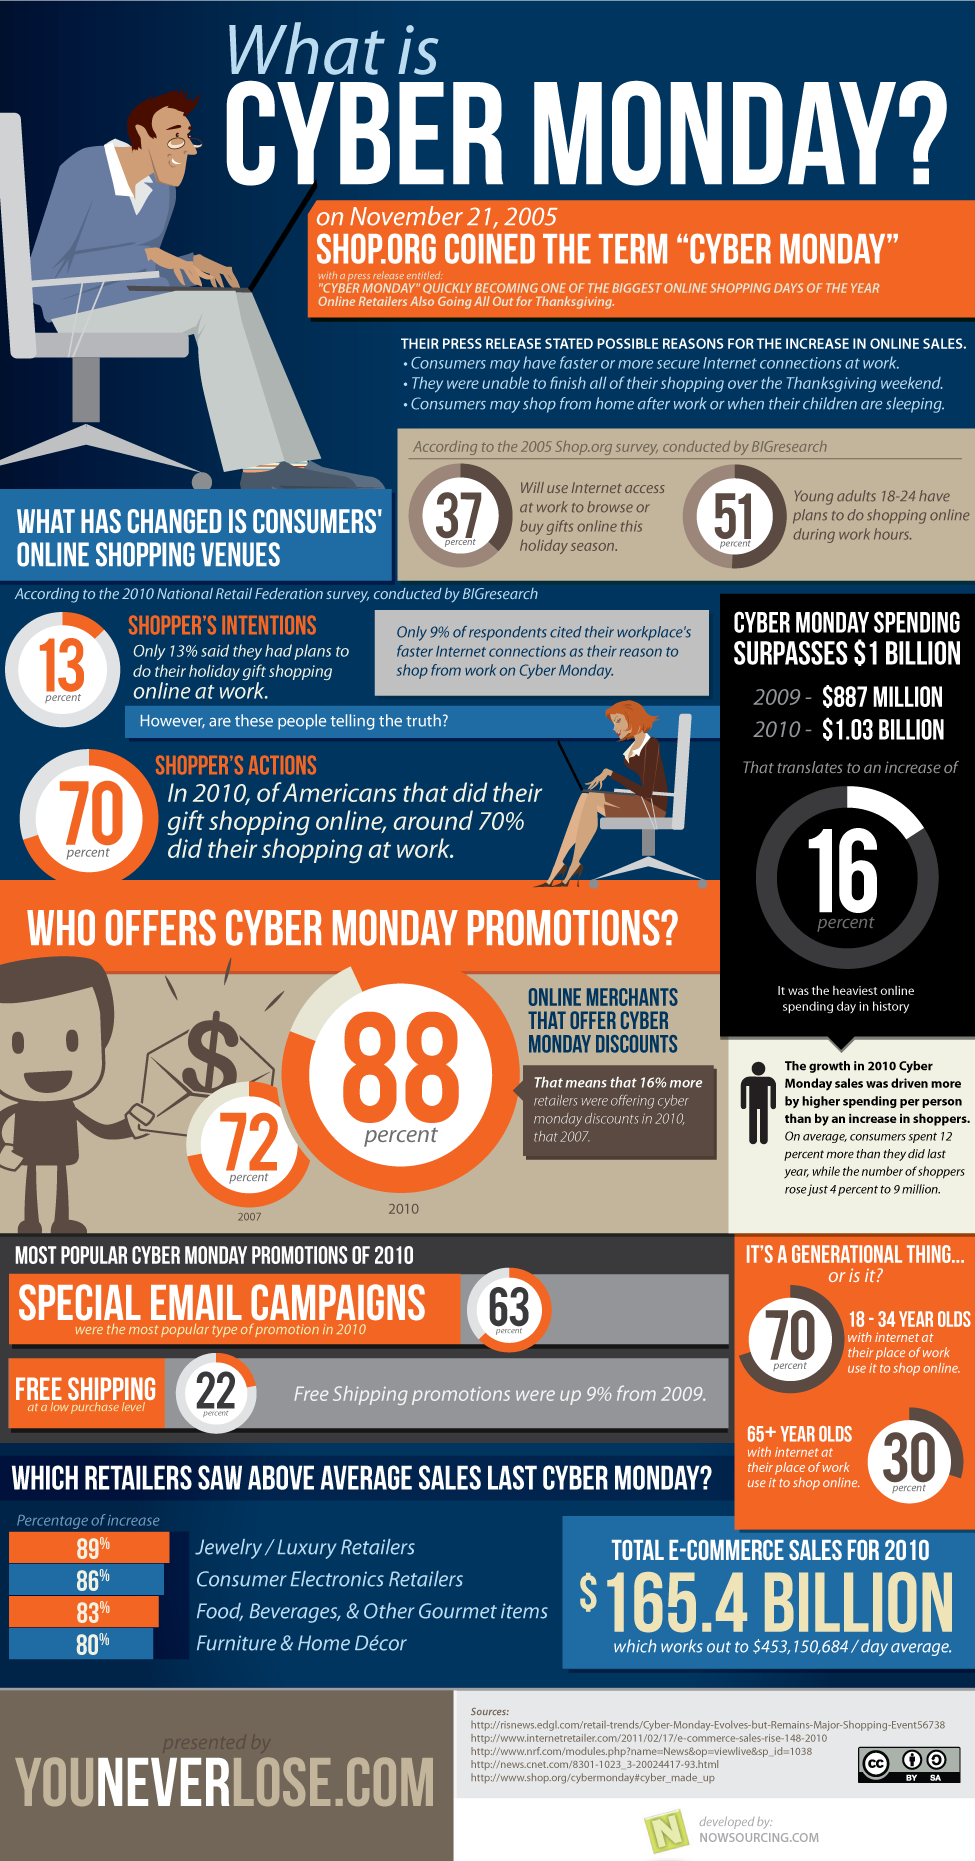 CyberMonday facts, CyberMonday history